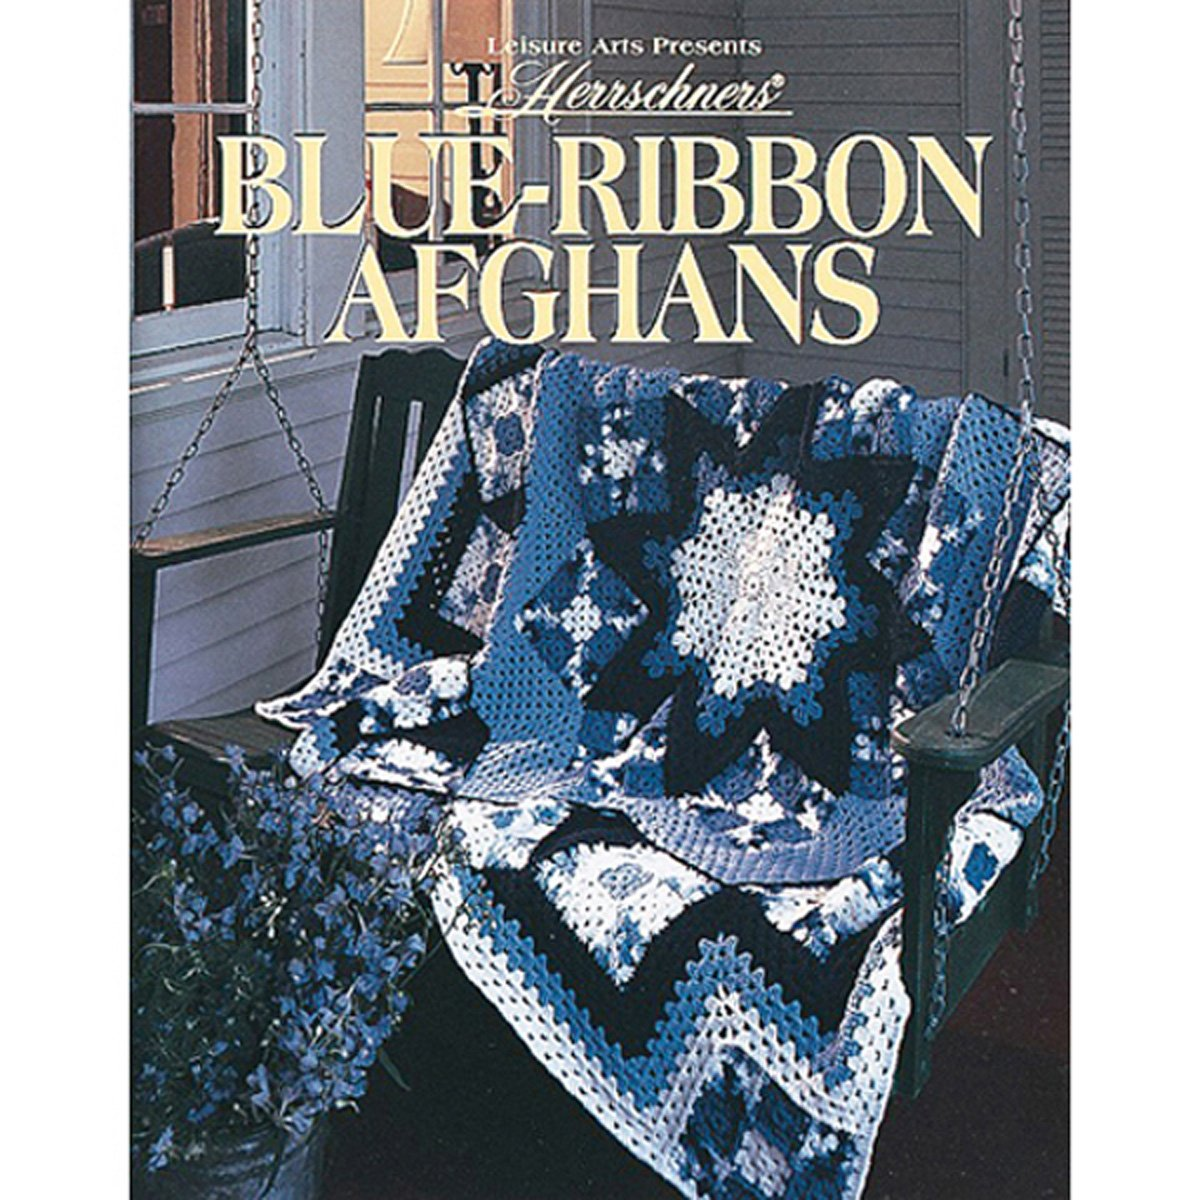 Leisure arts blue ribbon afghans 0749075082053 amazon books bankloansurffo Images